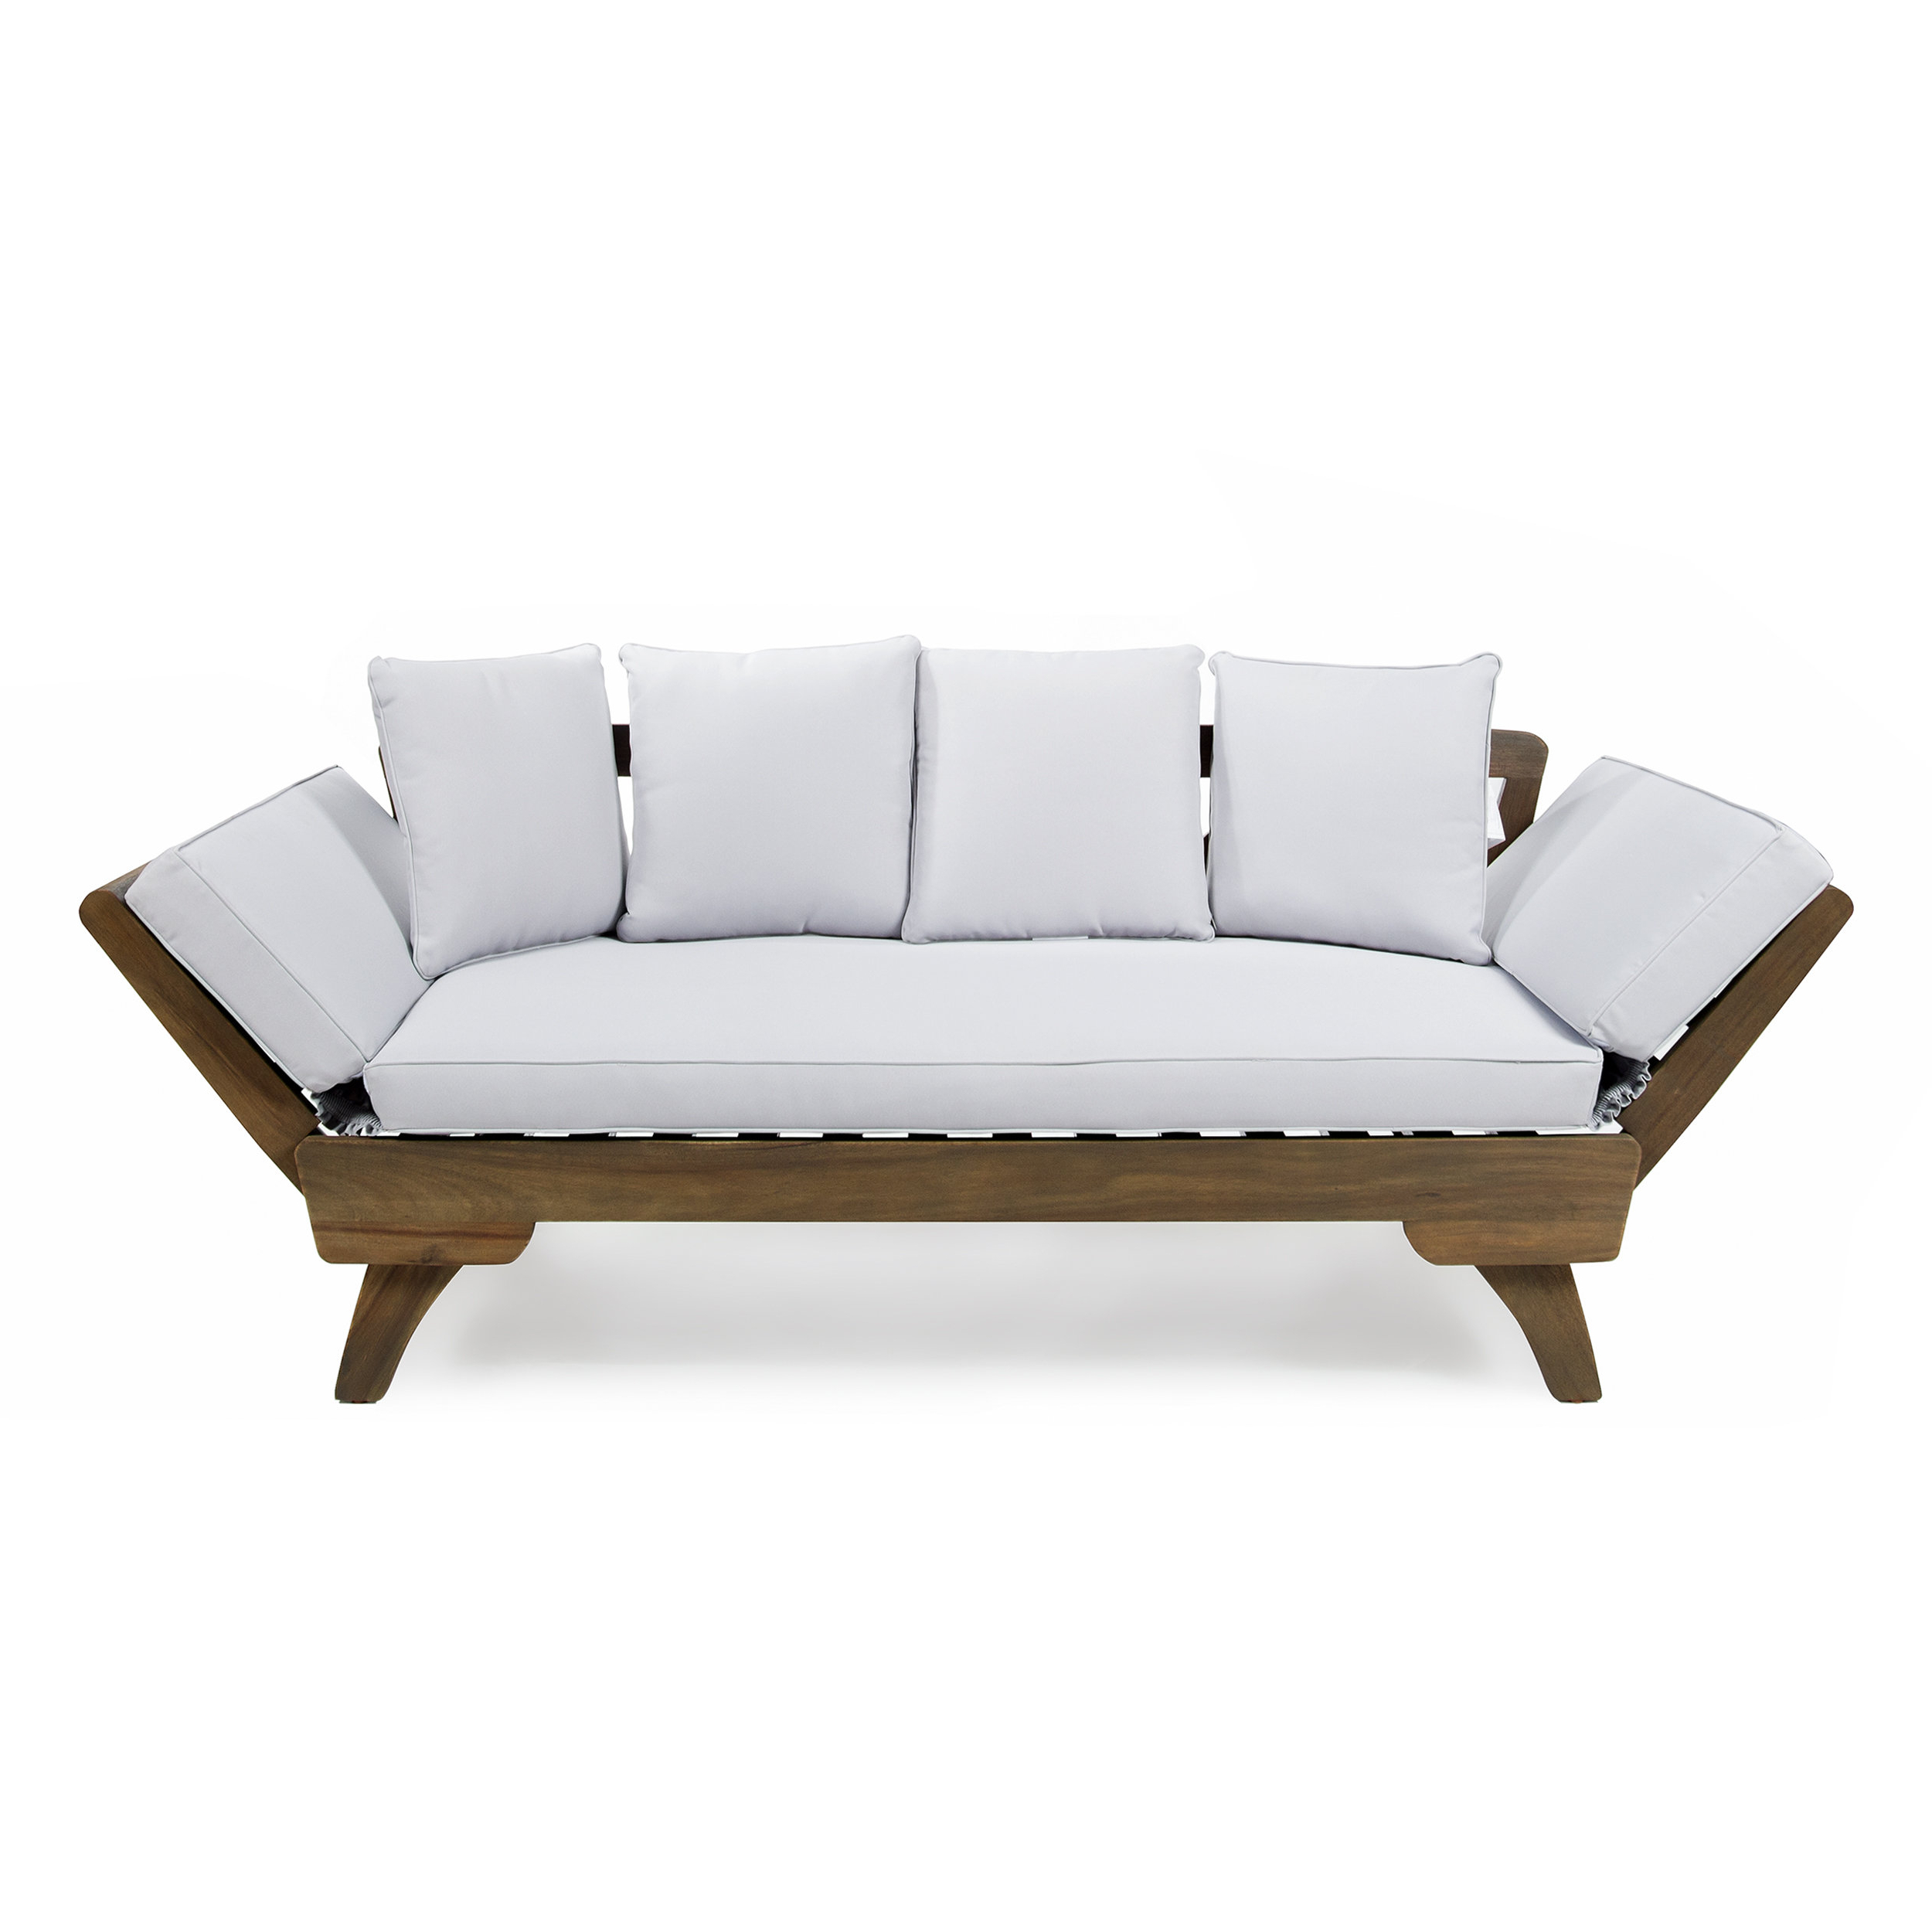 Ellanti Teak Patio Daybed With Cushions For Current Ellanti Teak Patio Daybeds With Cushions (View 3 of 20)